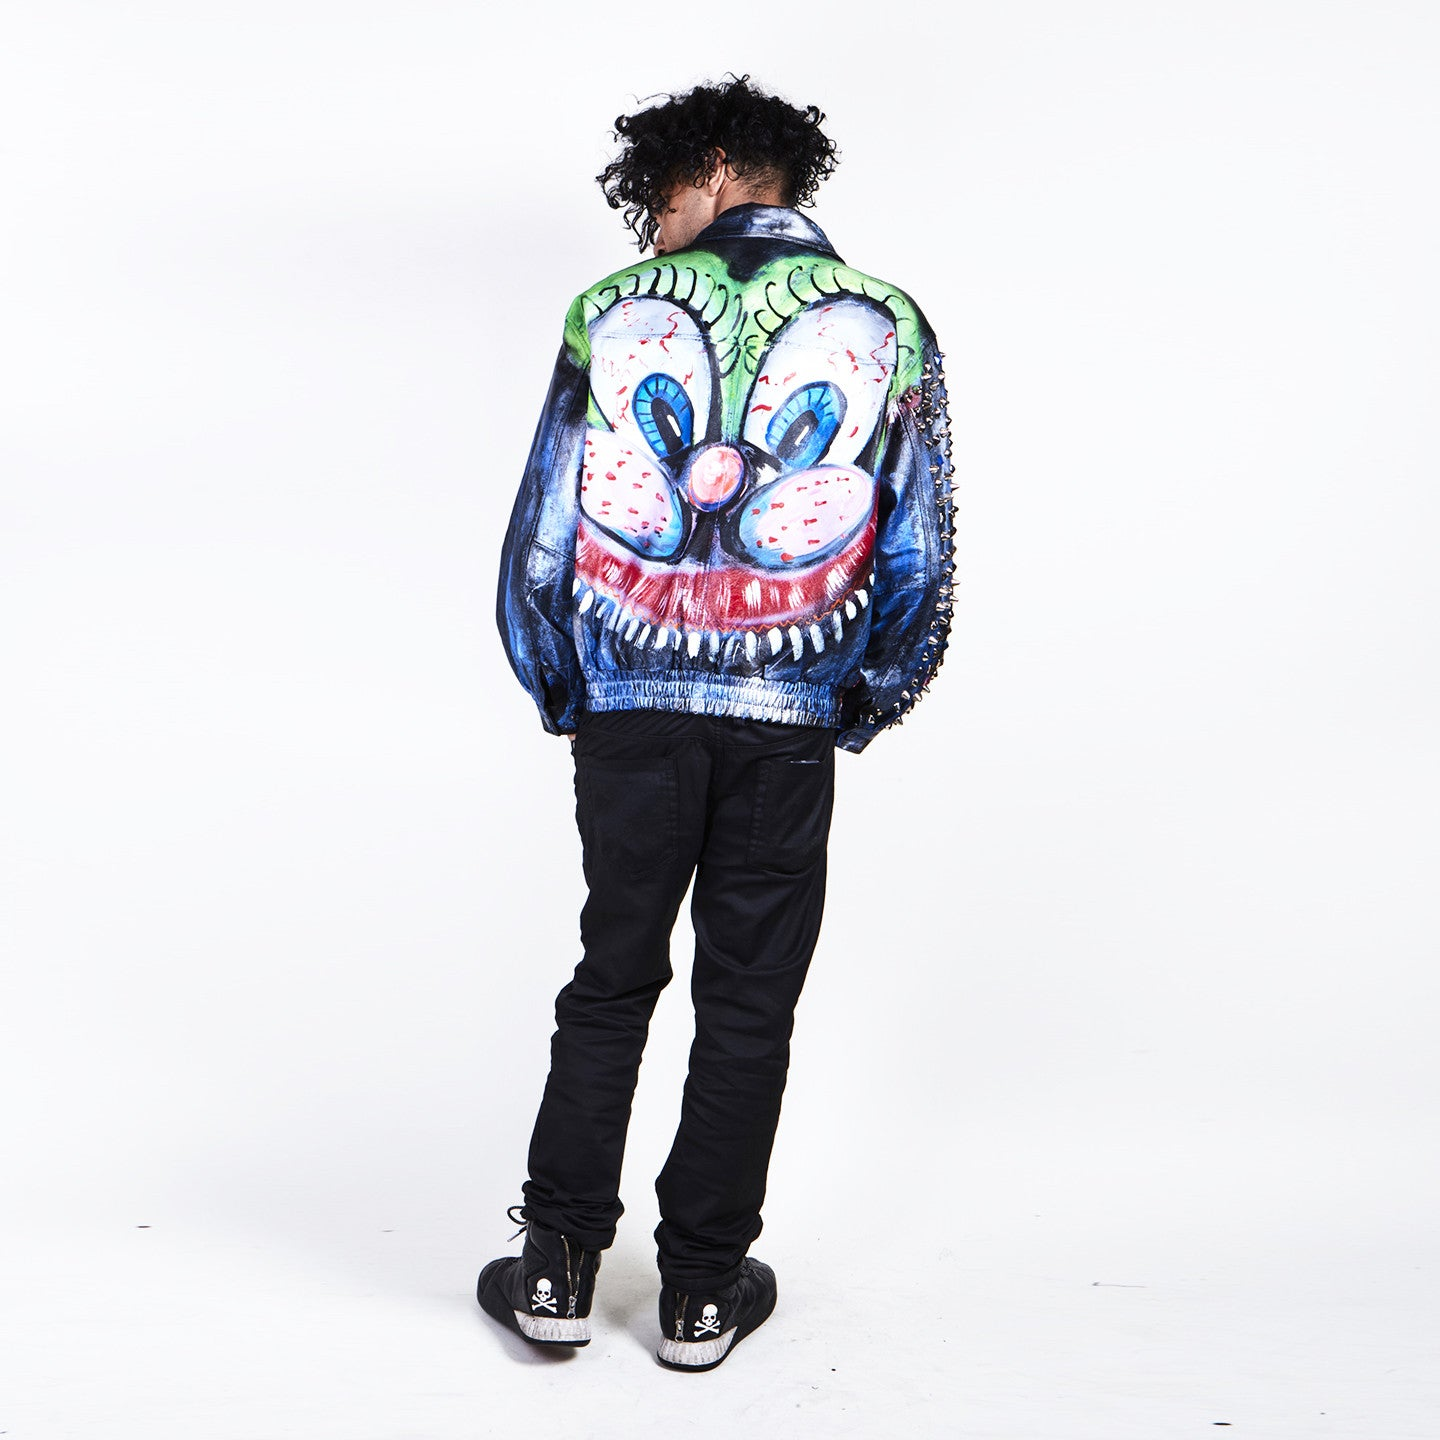 Scooter LaForge X STUDMUFFIN - EXCLUSIVE 'Bunny' Leather Bomber Jacket